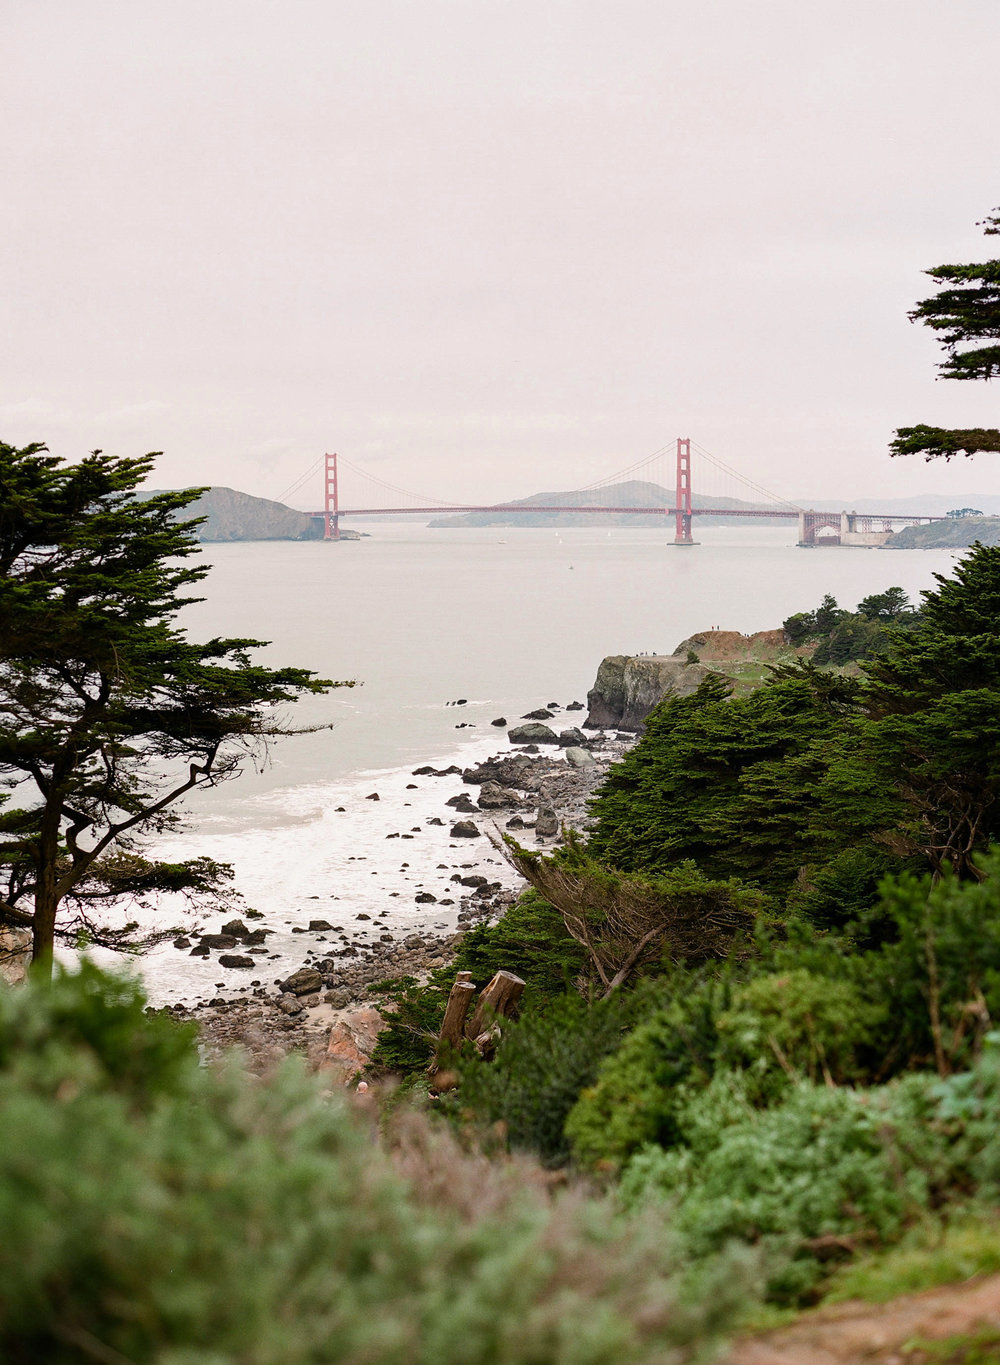 San_Francisco_Wedding_Kelly_Dave_Megan_Wynn_Photography_004.jpg